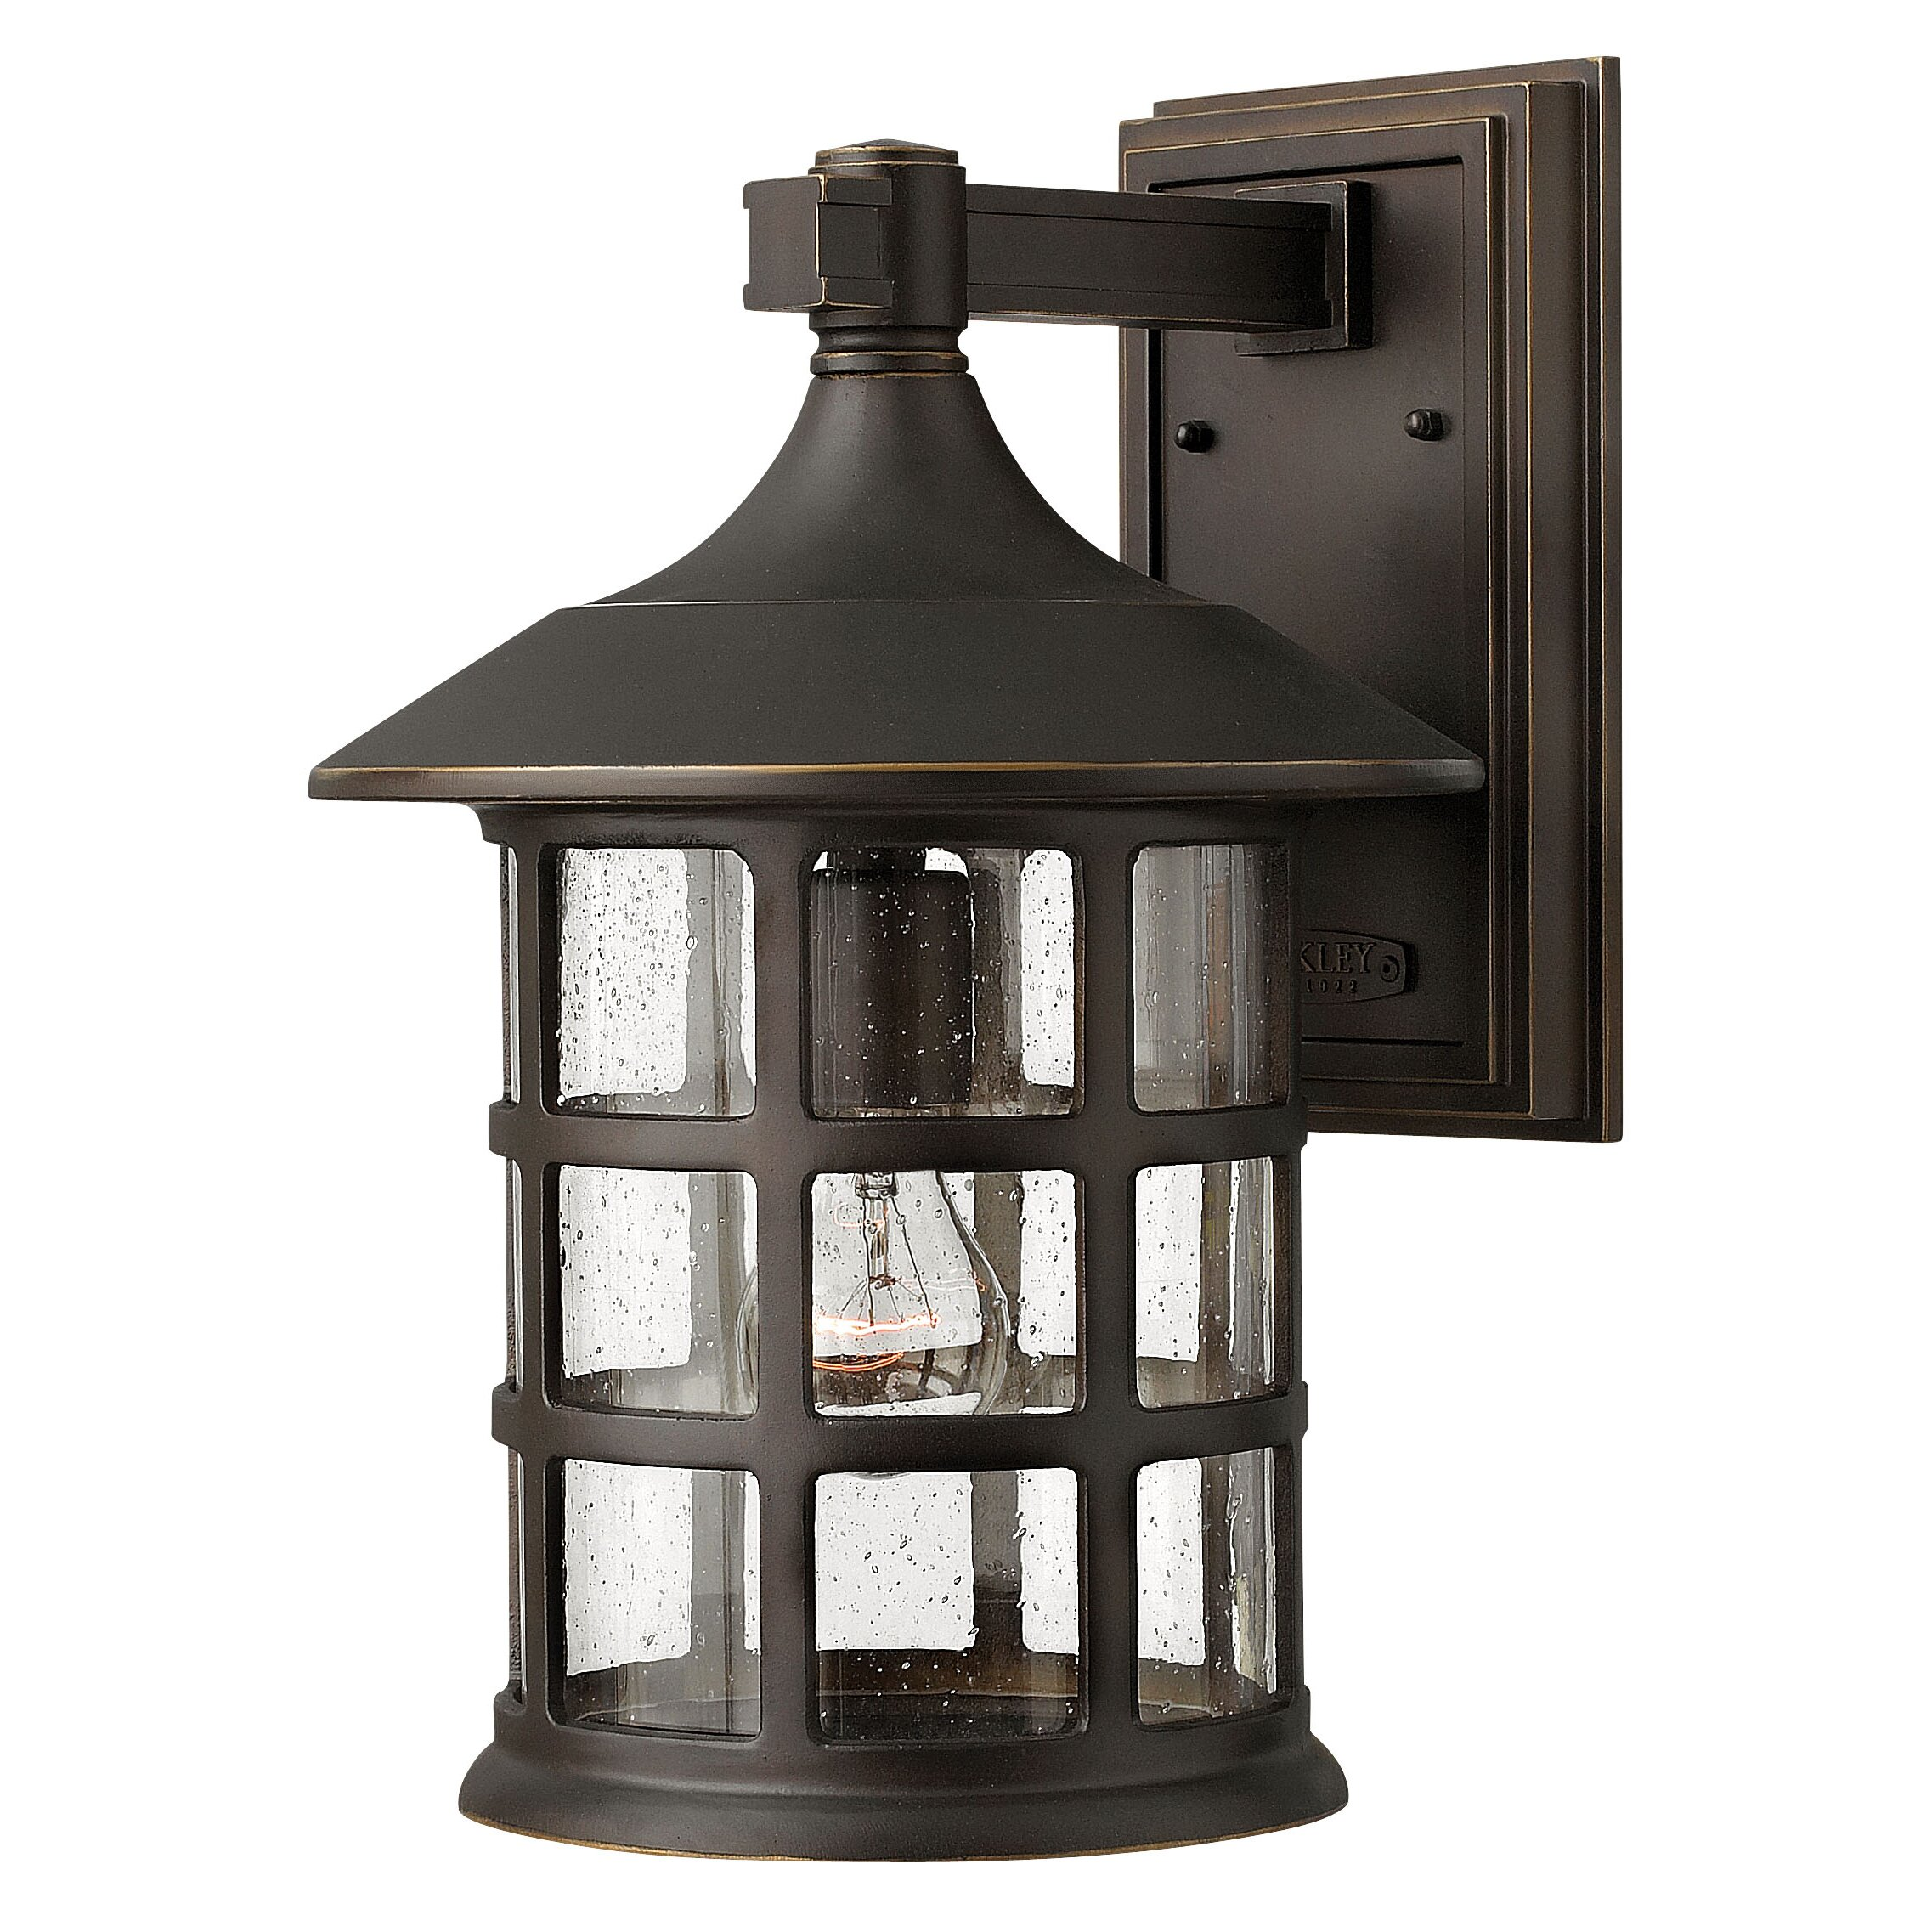 Exterior Wall Lantern Lights : Hinkley Lighting Freeport 1 Light Outdoor Wall Lantern & Reviews Wayfair